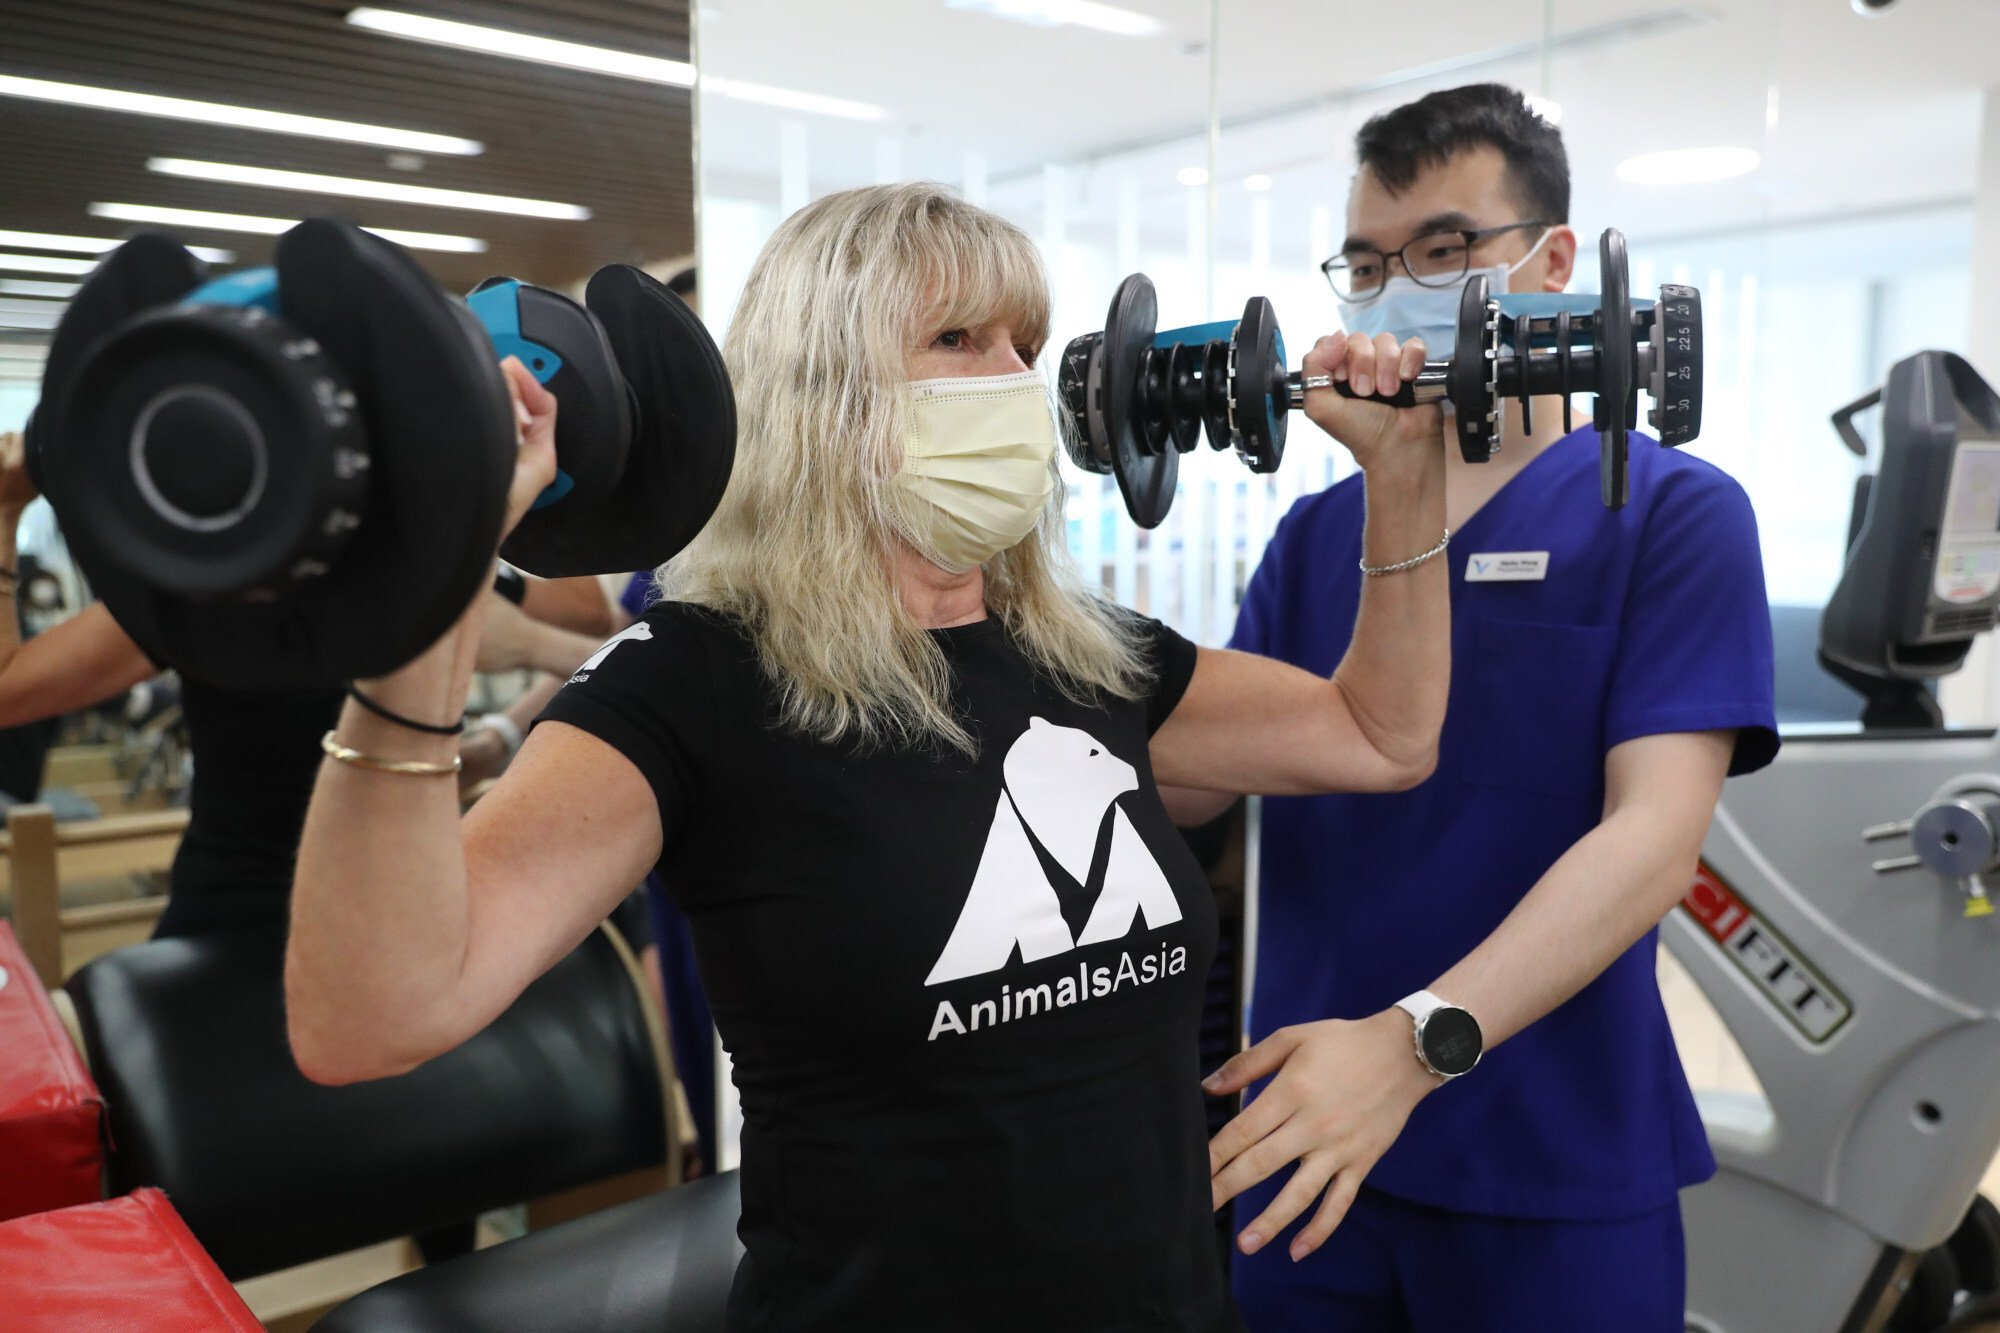 Robinson undergoes a therapy session with her physiotherapist Wong Man-ho at Virtus, a gym in Hong Kong's Central district. Photo: Edmond So